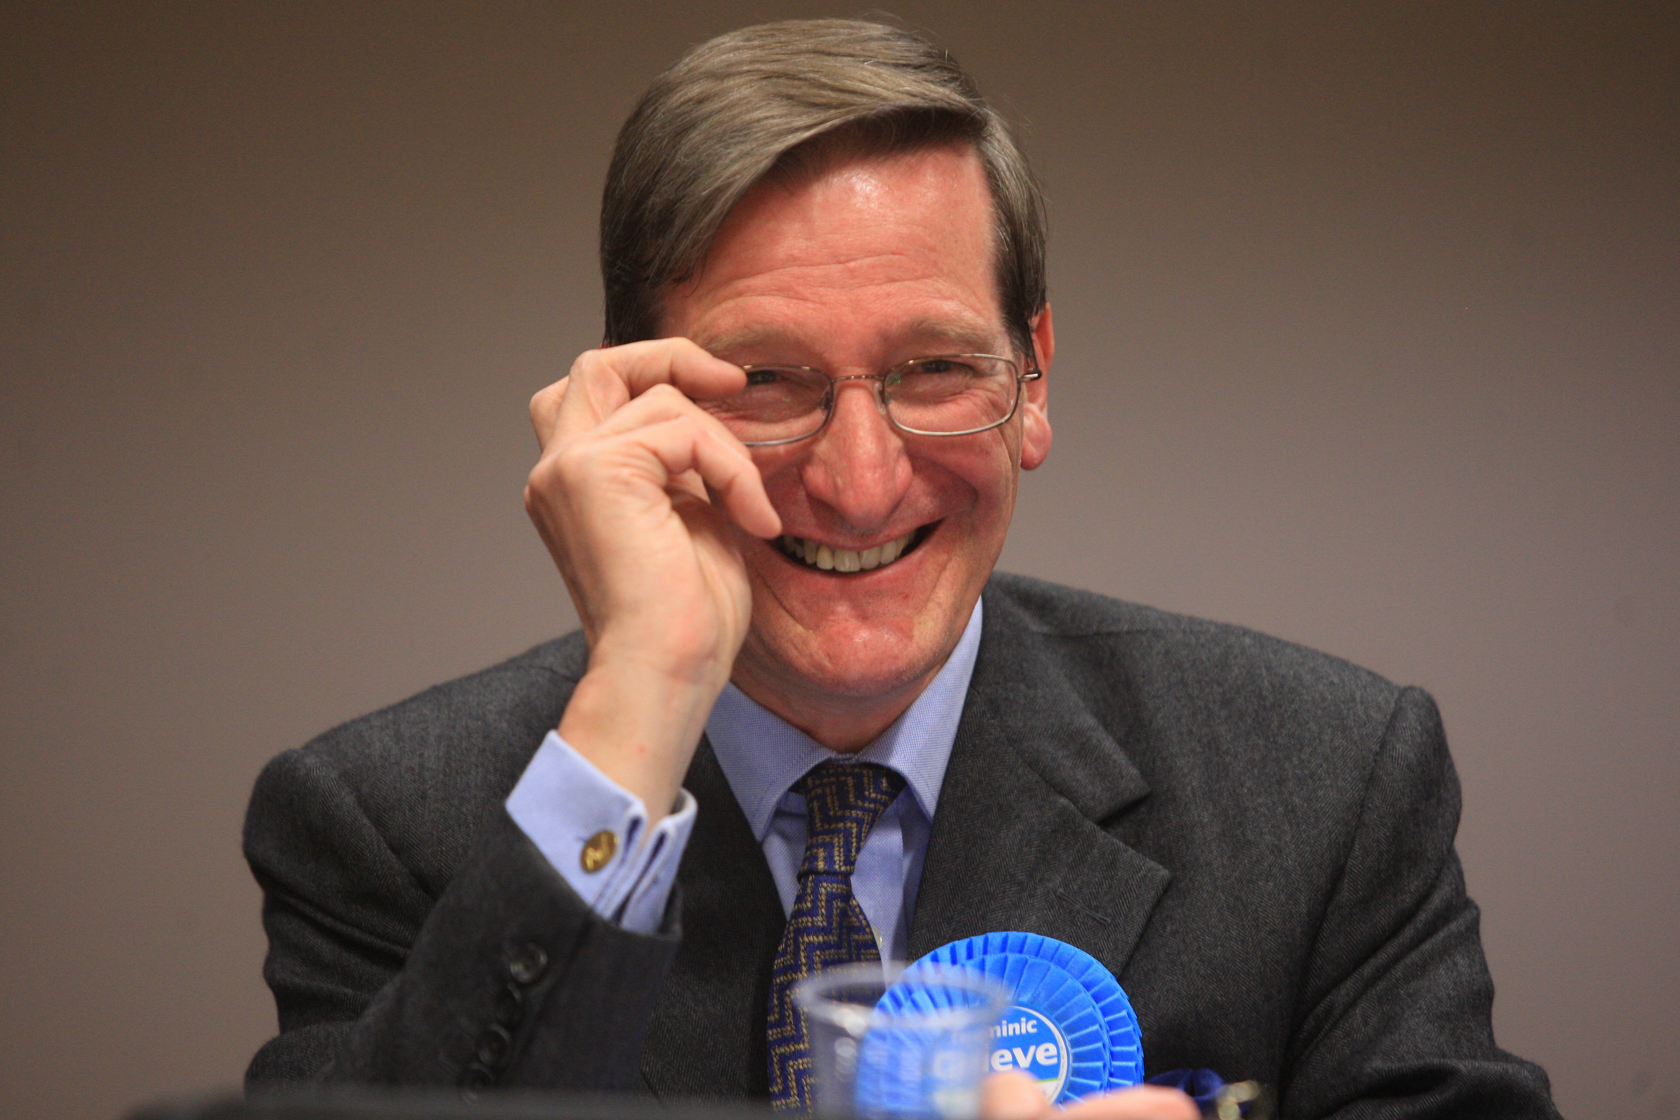 Dominic Grieve, Beaconsfield MP - ARM Images